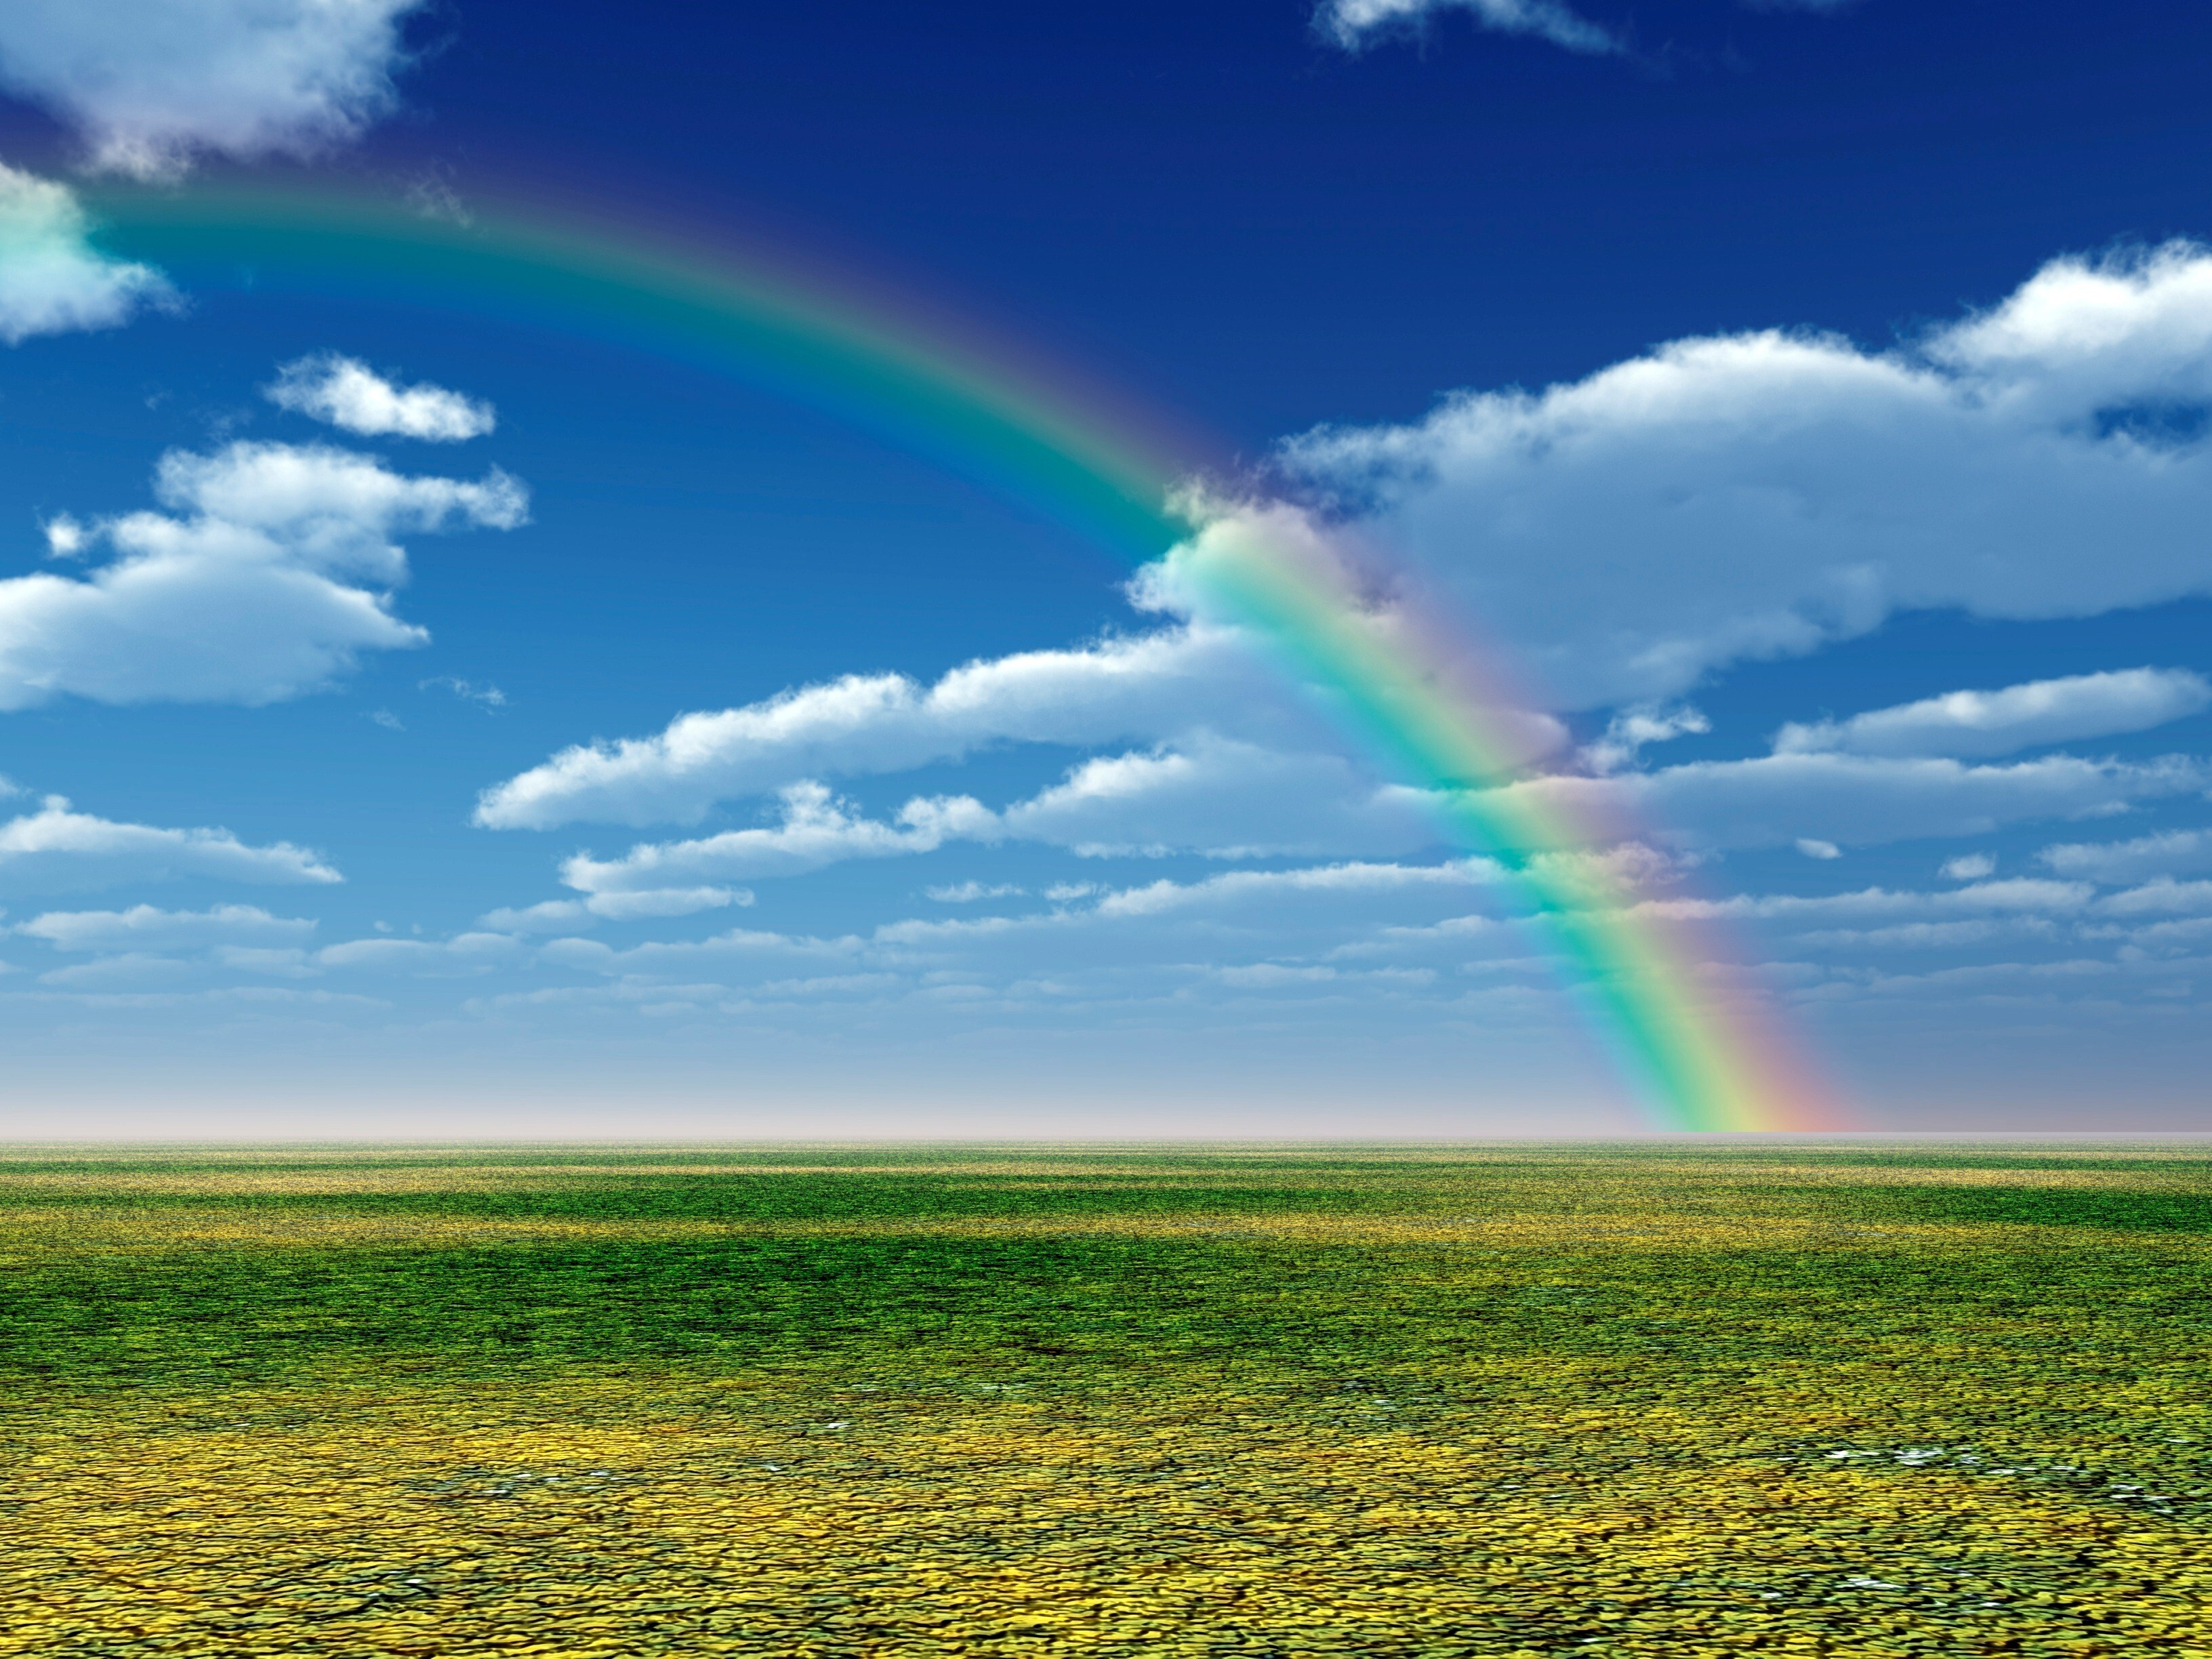 Beautiful natural rainbow wallpaper hd wallpapers voltagebd Choice Image